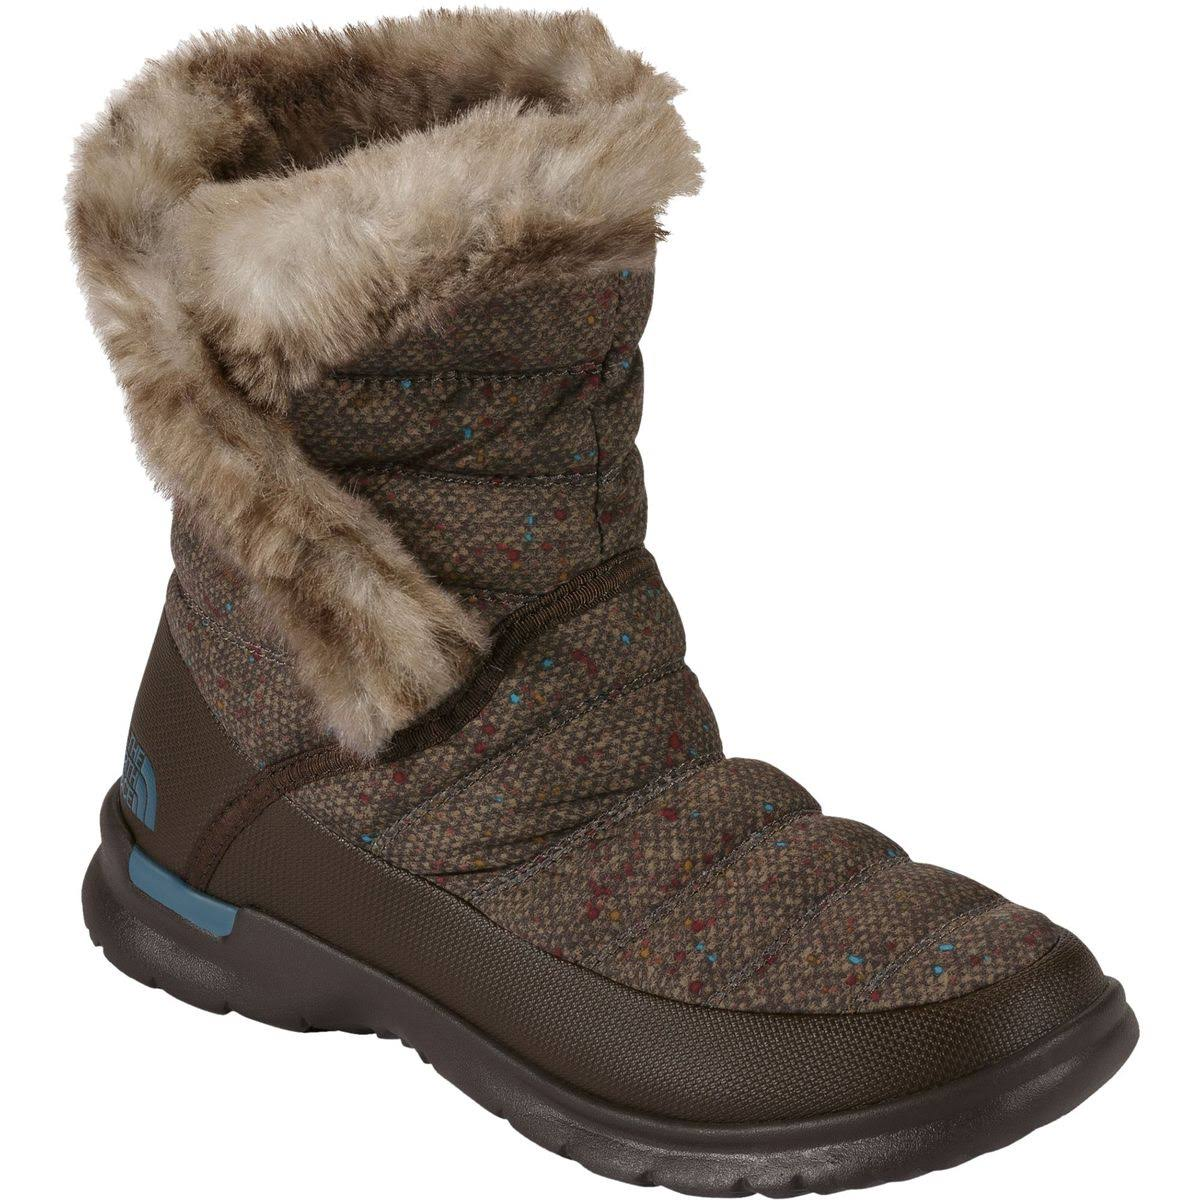 Bootie Ii North Face Microbaffle Damen The Grau Thermoball fOC1ccz